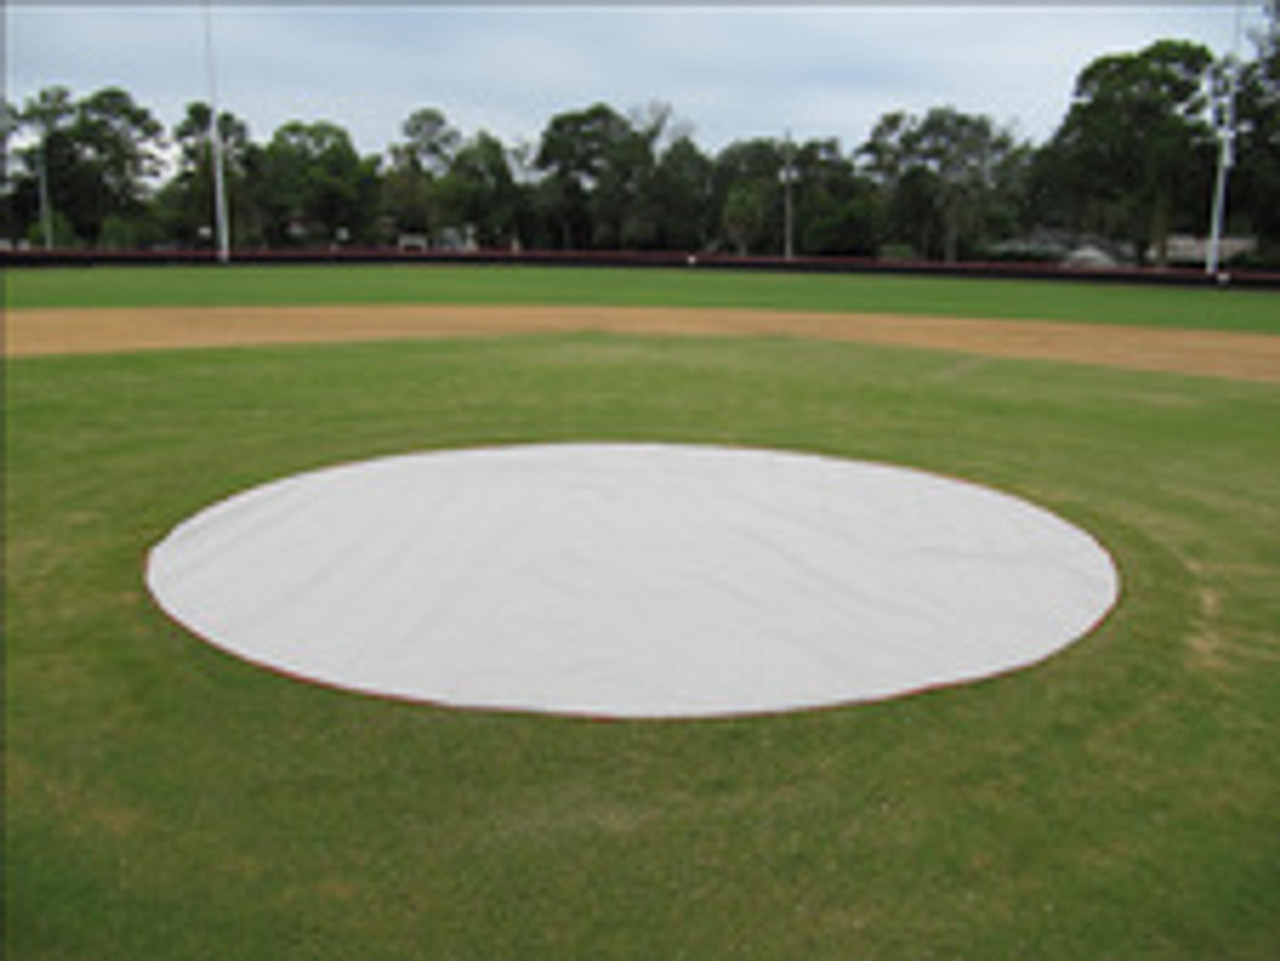 Baseball Field Covers Weighted 6 oz. 18' Diameter Mound & Base Protector